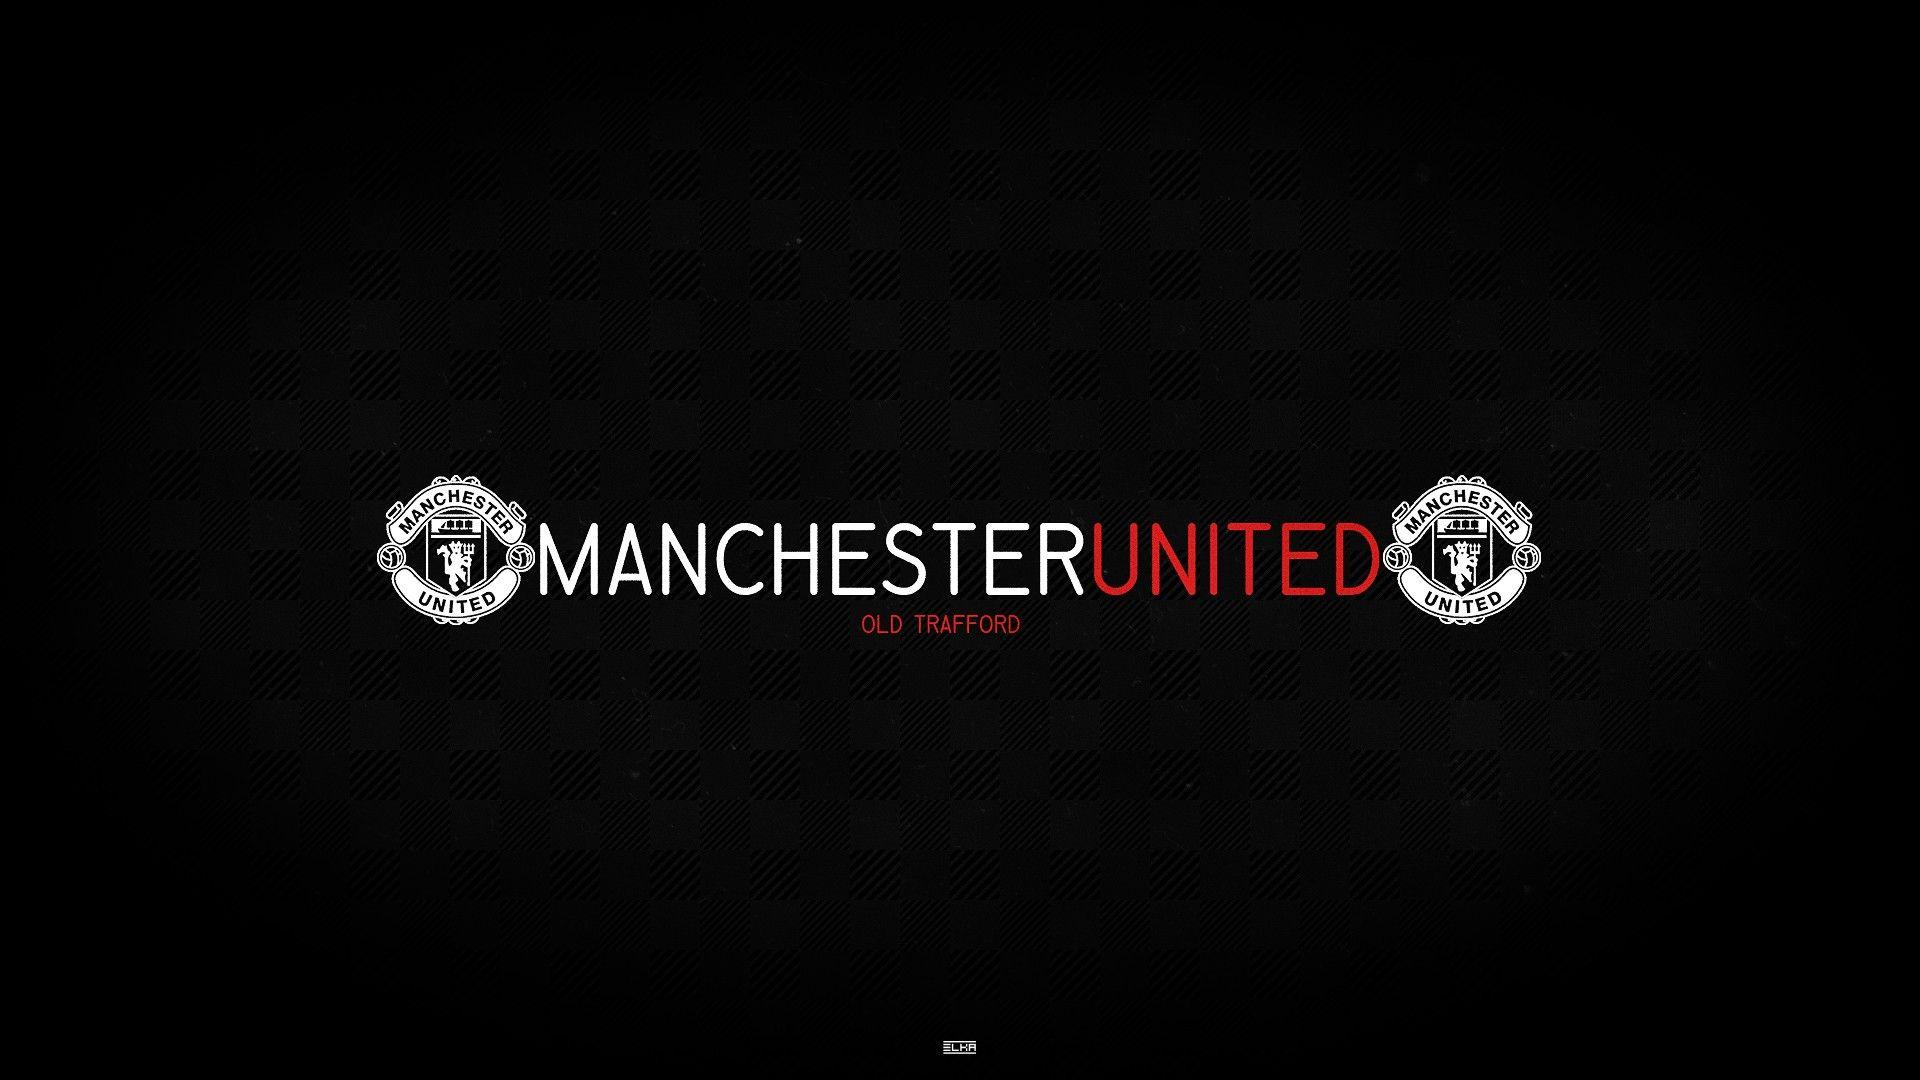 Unduh 66 Wallpaper Manchester United Hitam HD Terbaru